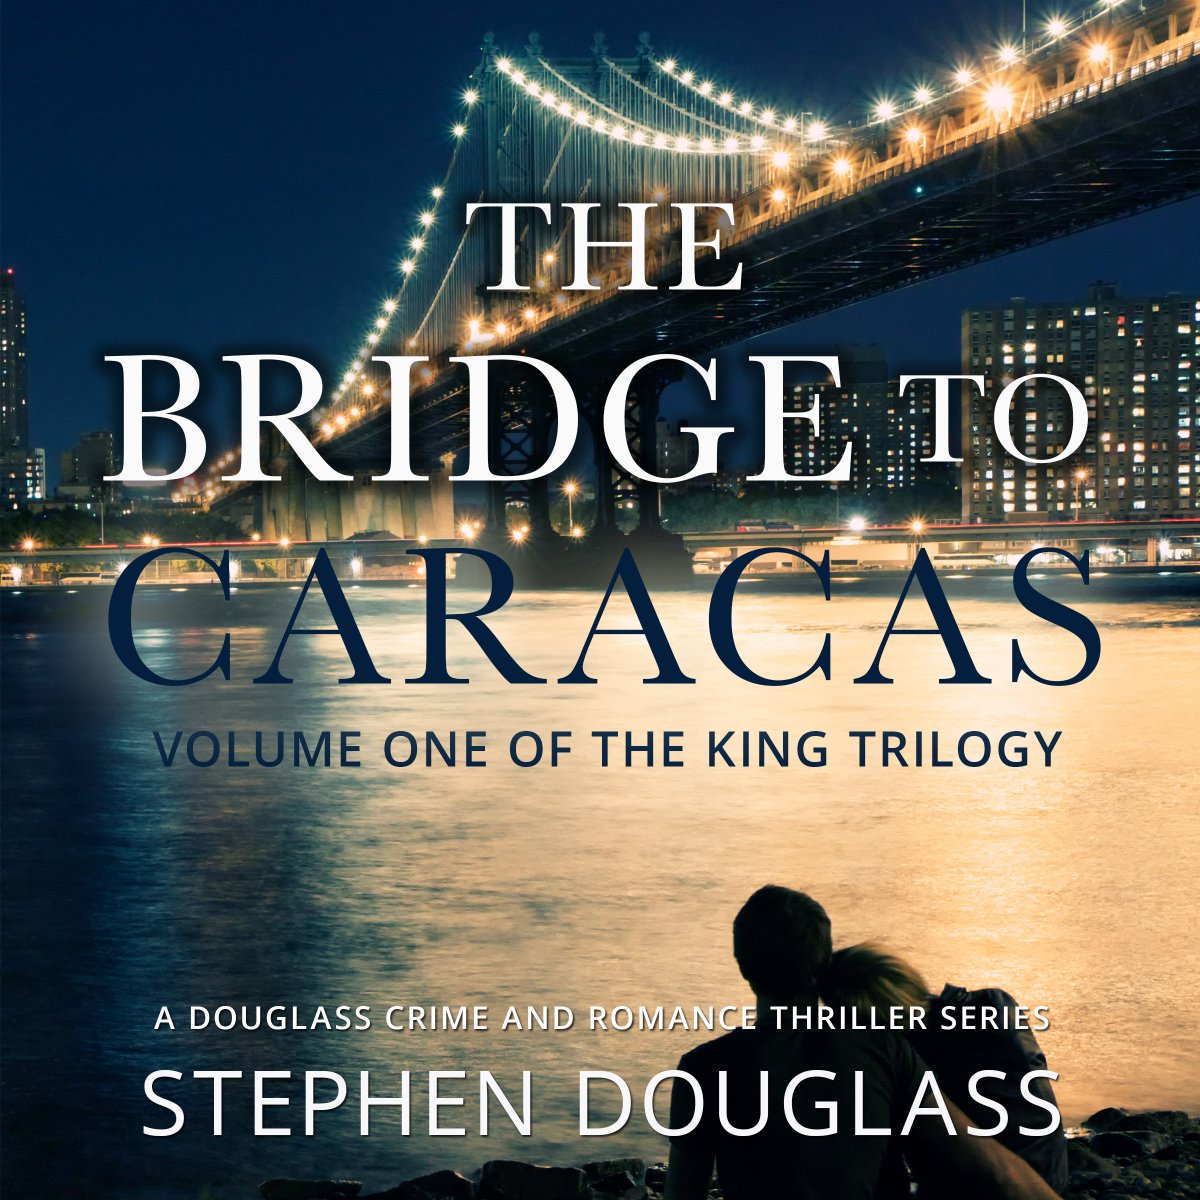 """One of the best suspense novels I&#39;ve read recently. I found it hard to put down.""   http:// bookgoodies.com/permafree-eboo k-the-bridge-to-caracas-by-stephen-douglass/ &nbsp; …   #free #suspense #thriller <br>http://pic.twitter.com/VfB4baMWIq"